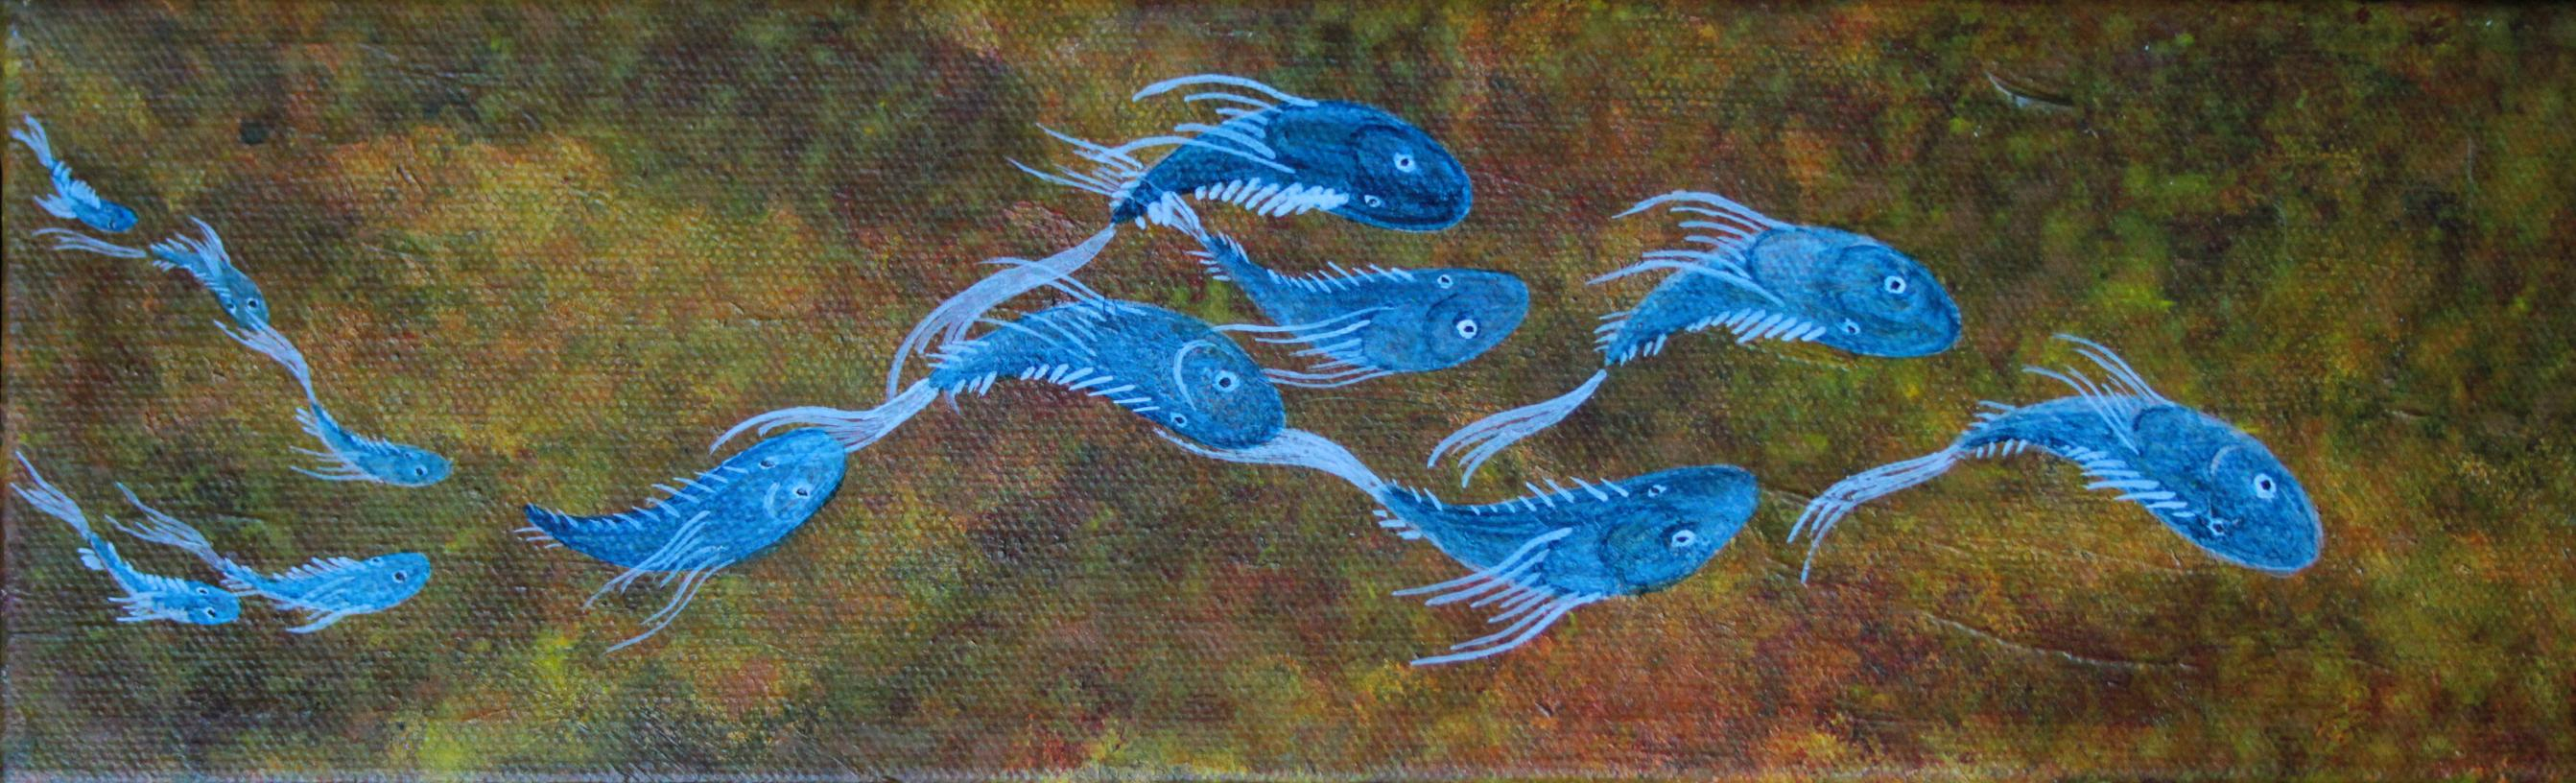 "Acrylic on Canvas 12"" x 4"" - 2013"